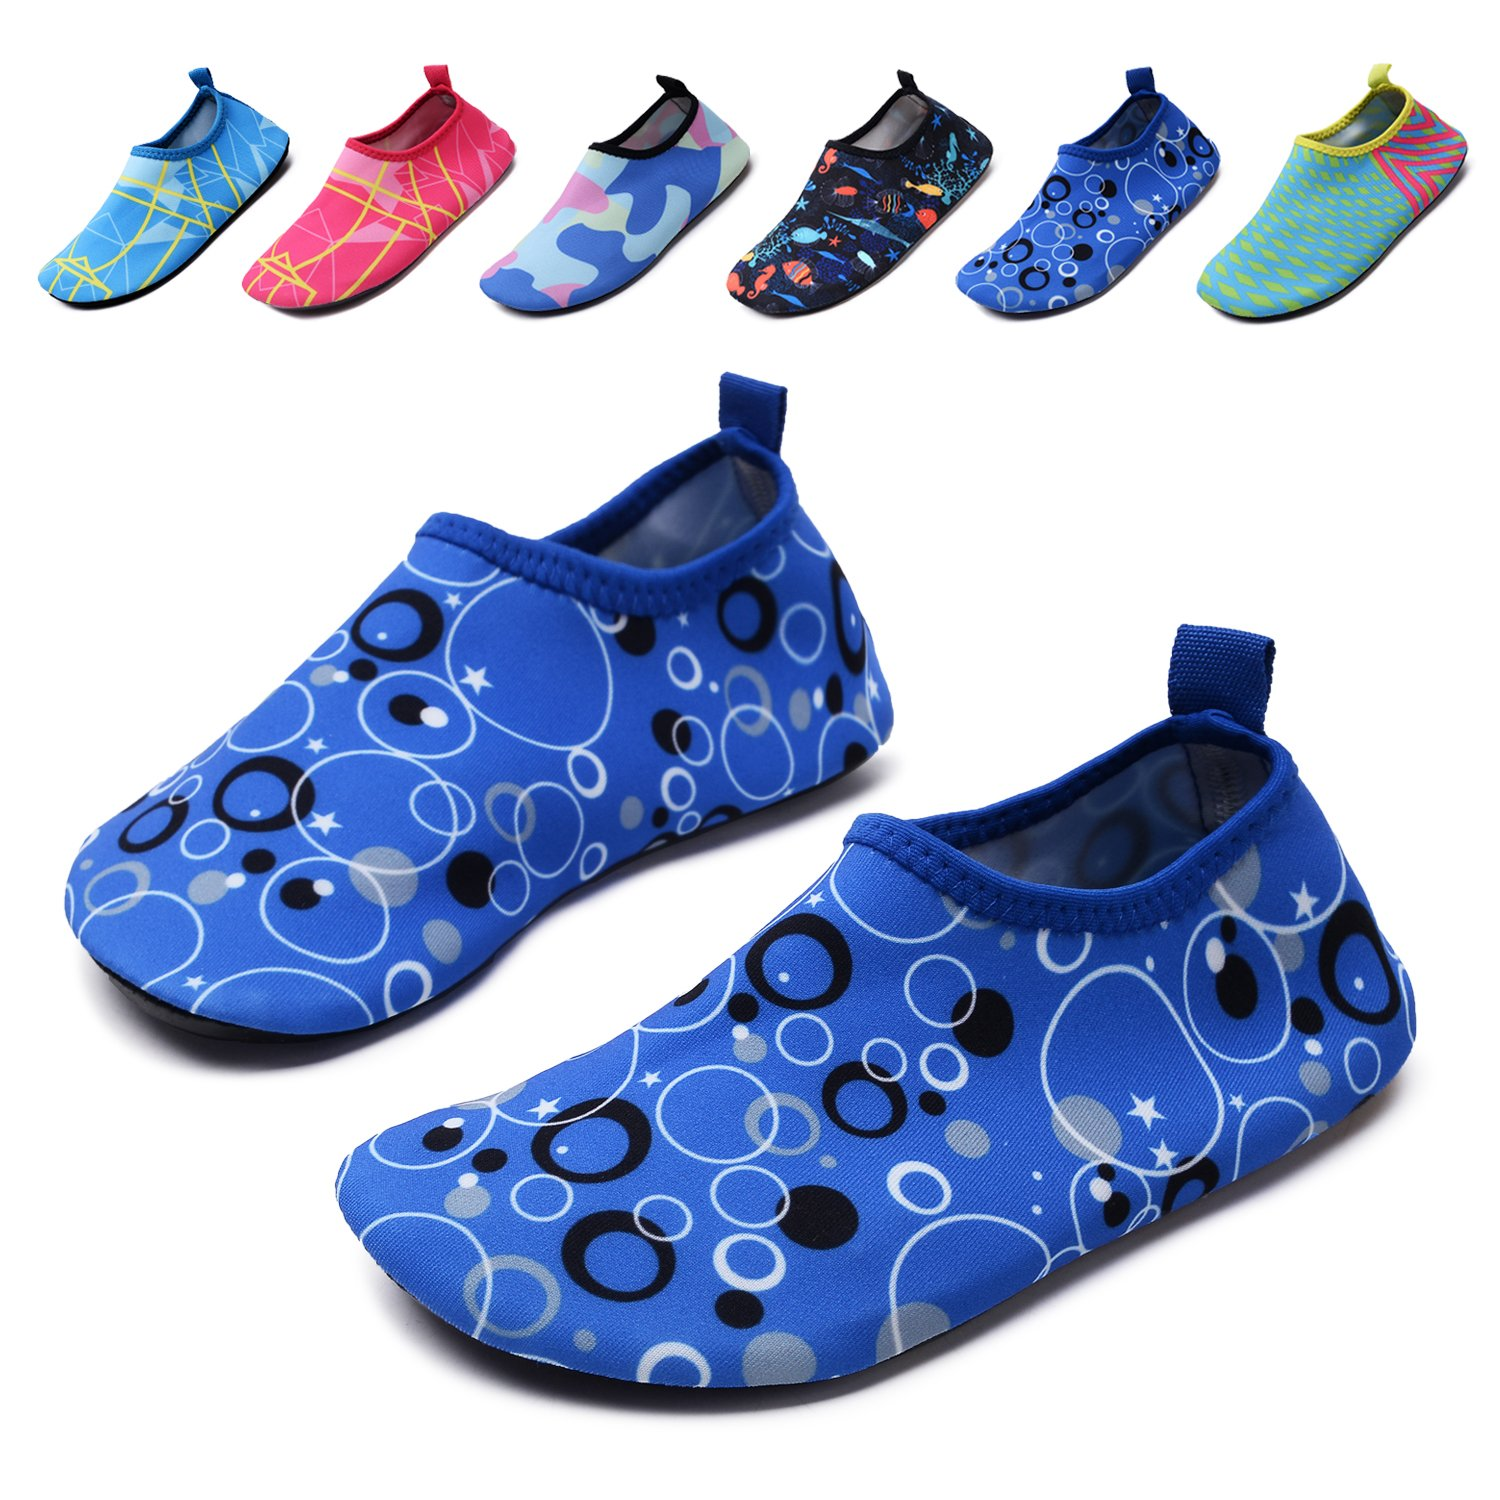 8a71af6b2 Get Quotations · Lewhosy Kids Boys and Girls Swim Water Shoes Quick Drying Barefoot  Aqua Socks Shoes for Beach